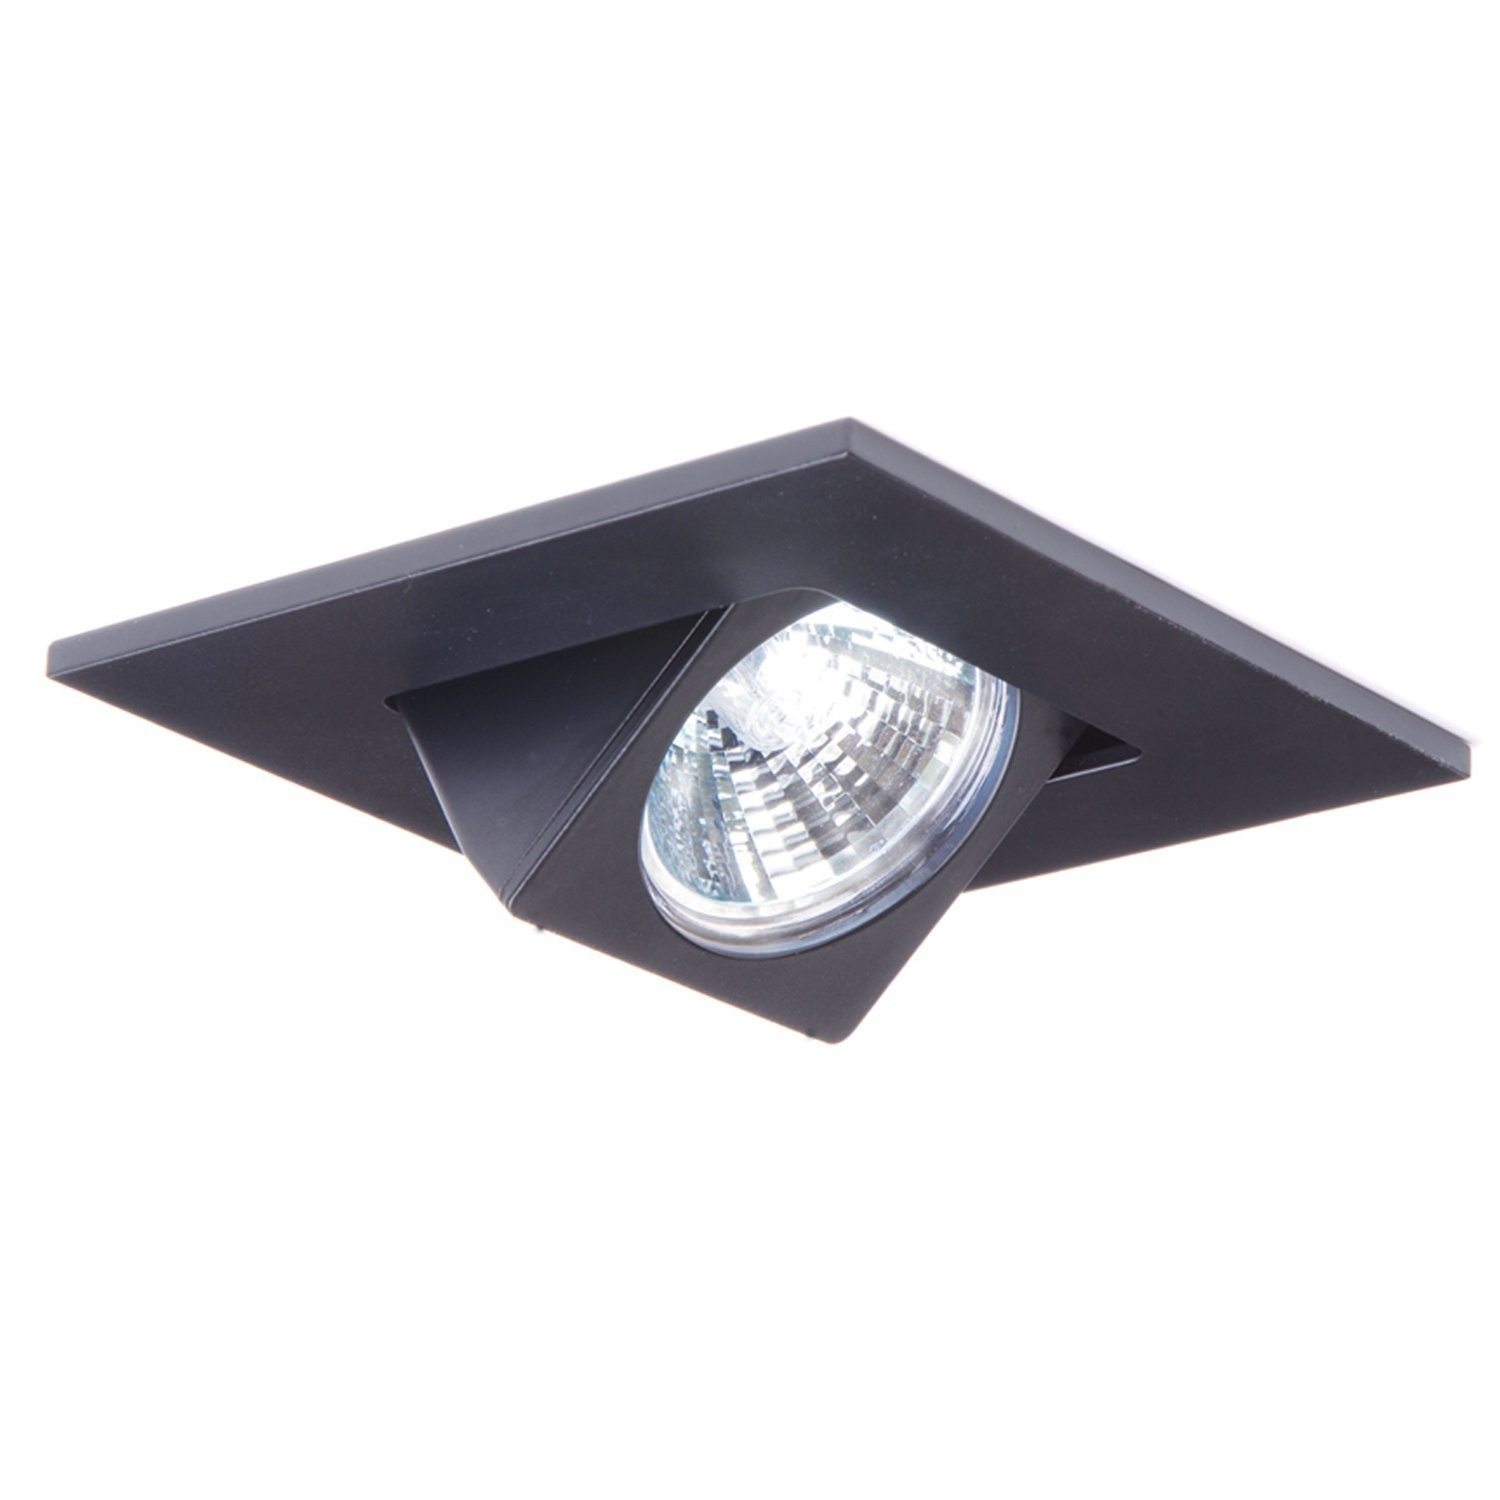 Halo 3013bk recessed lighting trim 3 adjustable gimbal square trim halo 3013bk recessed lighting trim 3 adjustable gimbal square trim black aloadofball